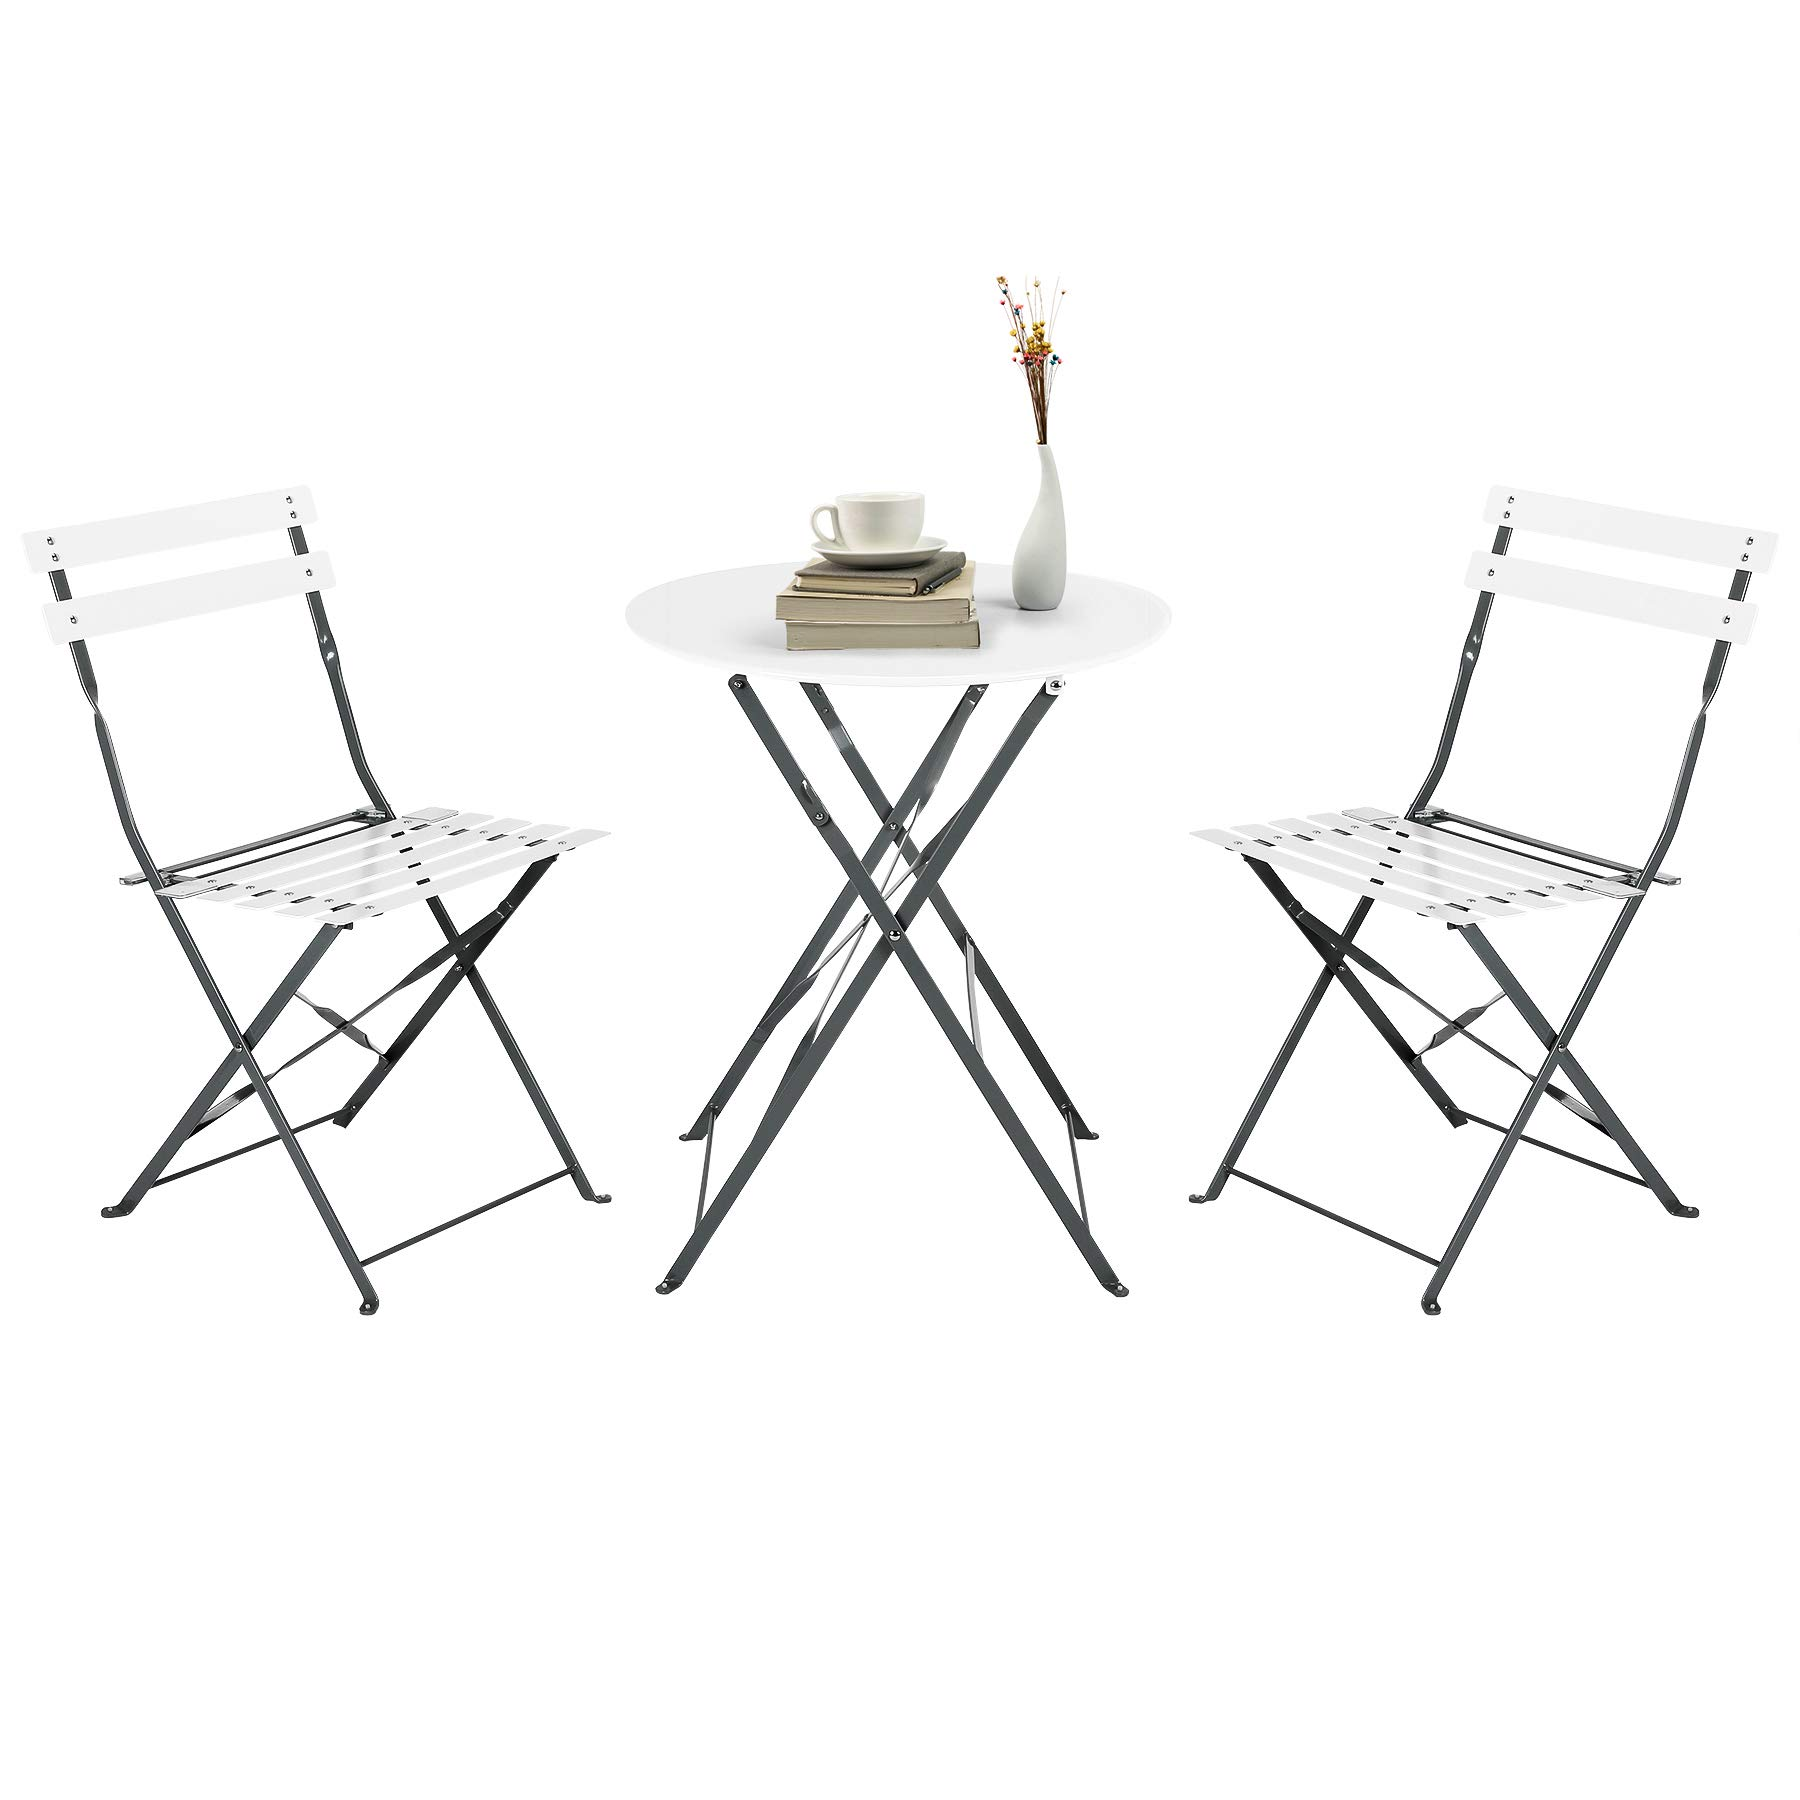 CO-Z Premium Steel Patio Bistro Set, Folding Outdoor Patio Furniture Sets, 3 Piece Patio Set of Foldable Patio Table and Chairs, White